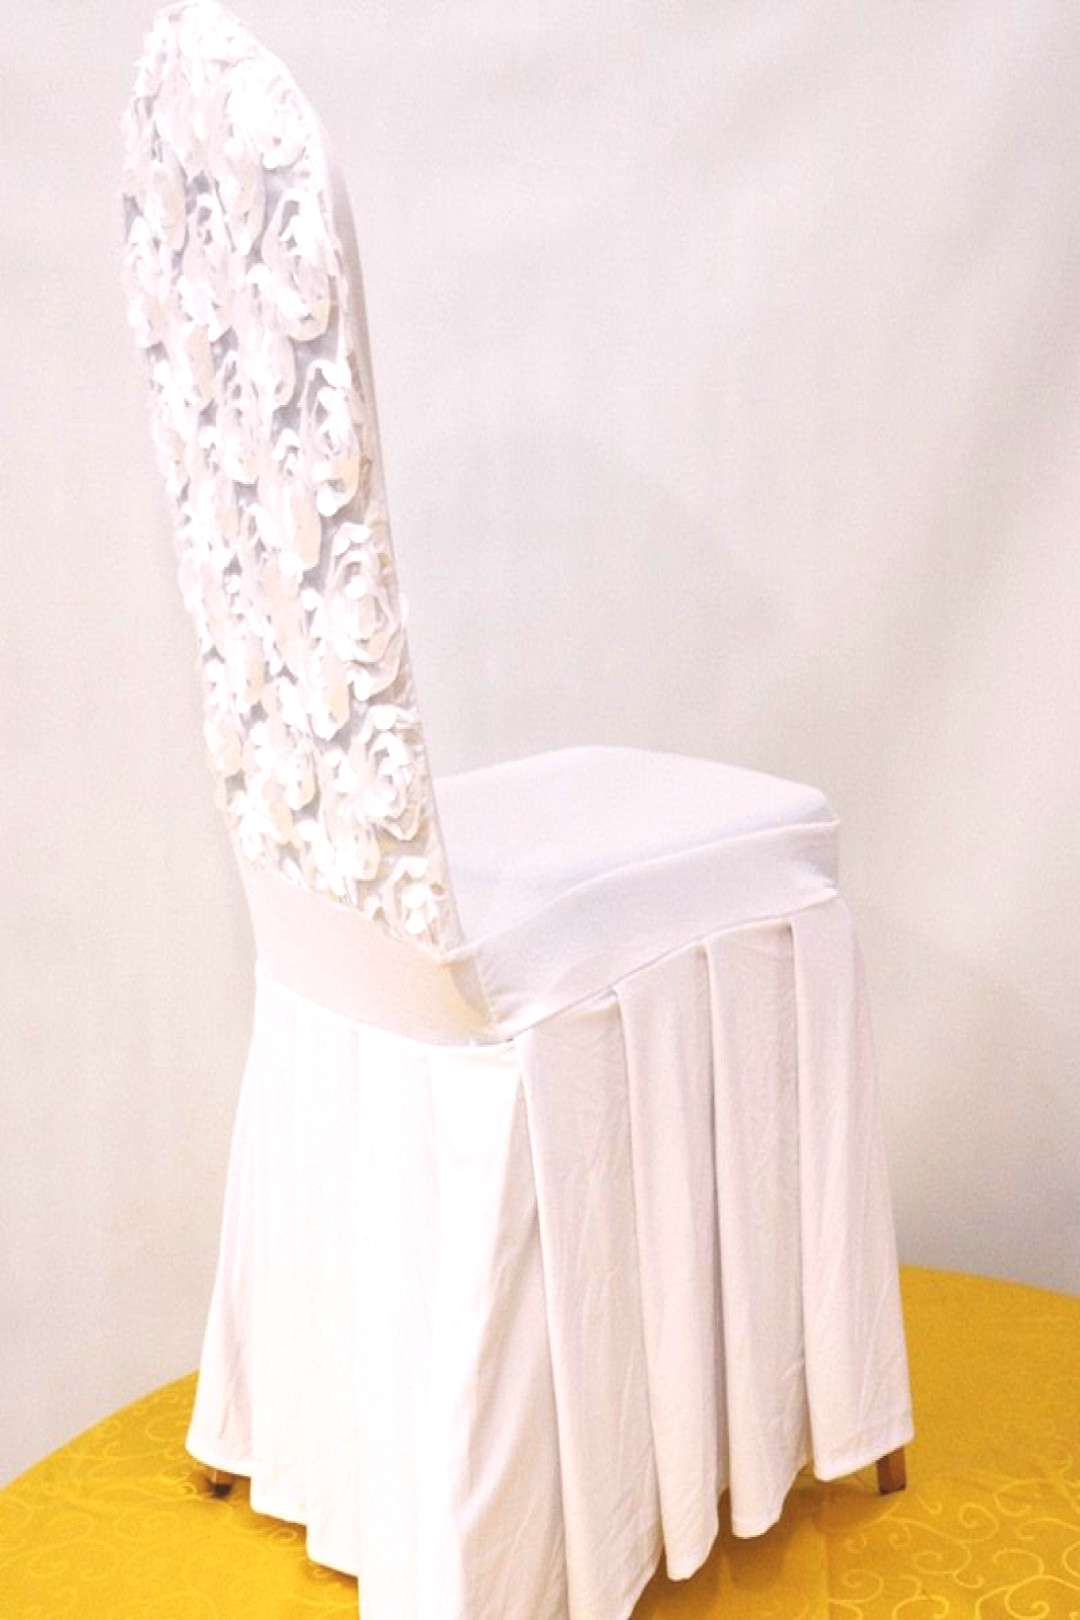 101 reference of elegant chair covers pittsburgh elegant chair covers pittsburgh-#elegant Please Cl